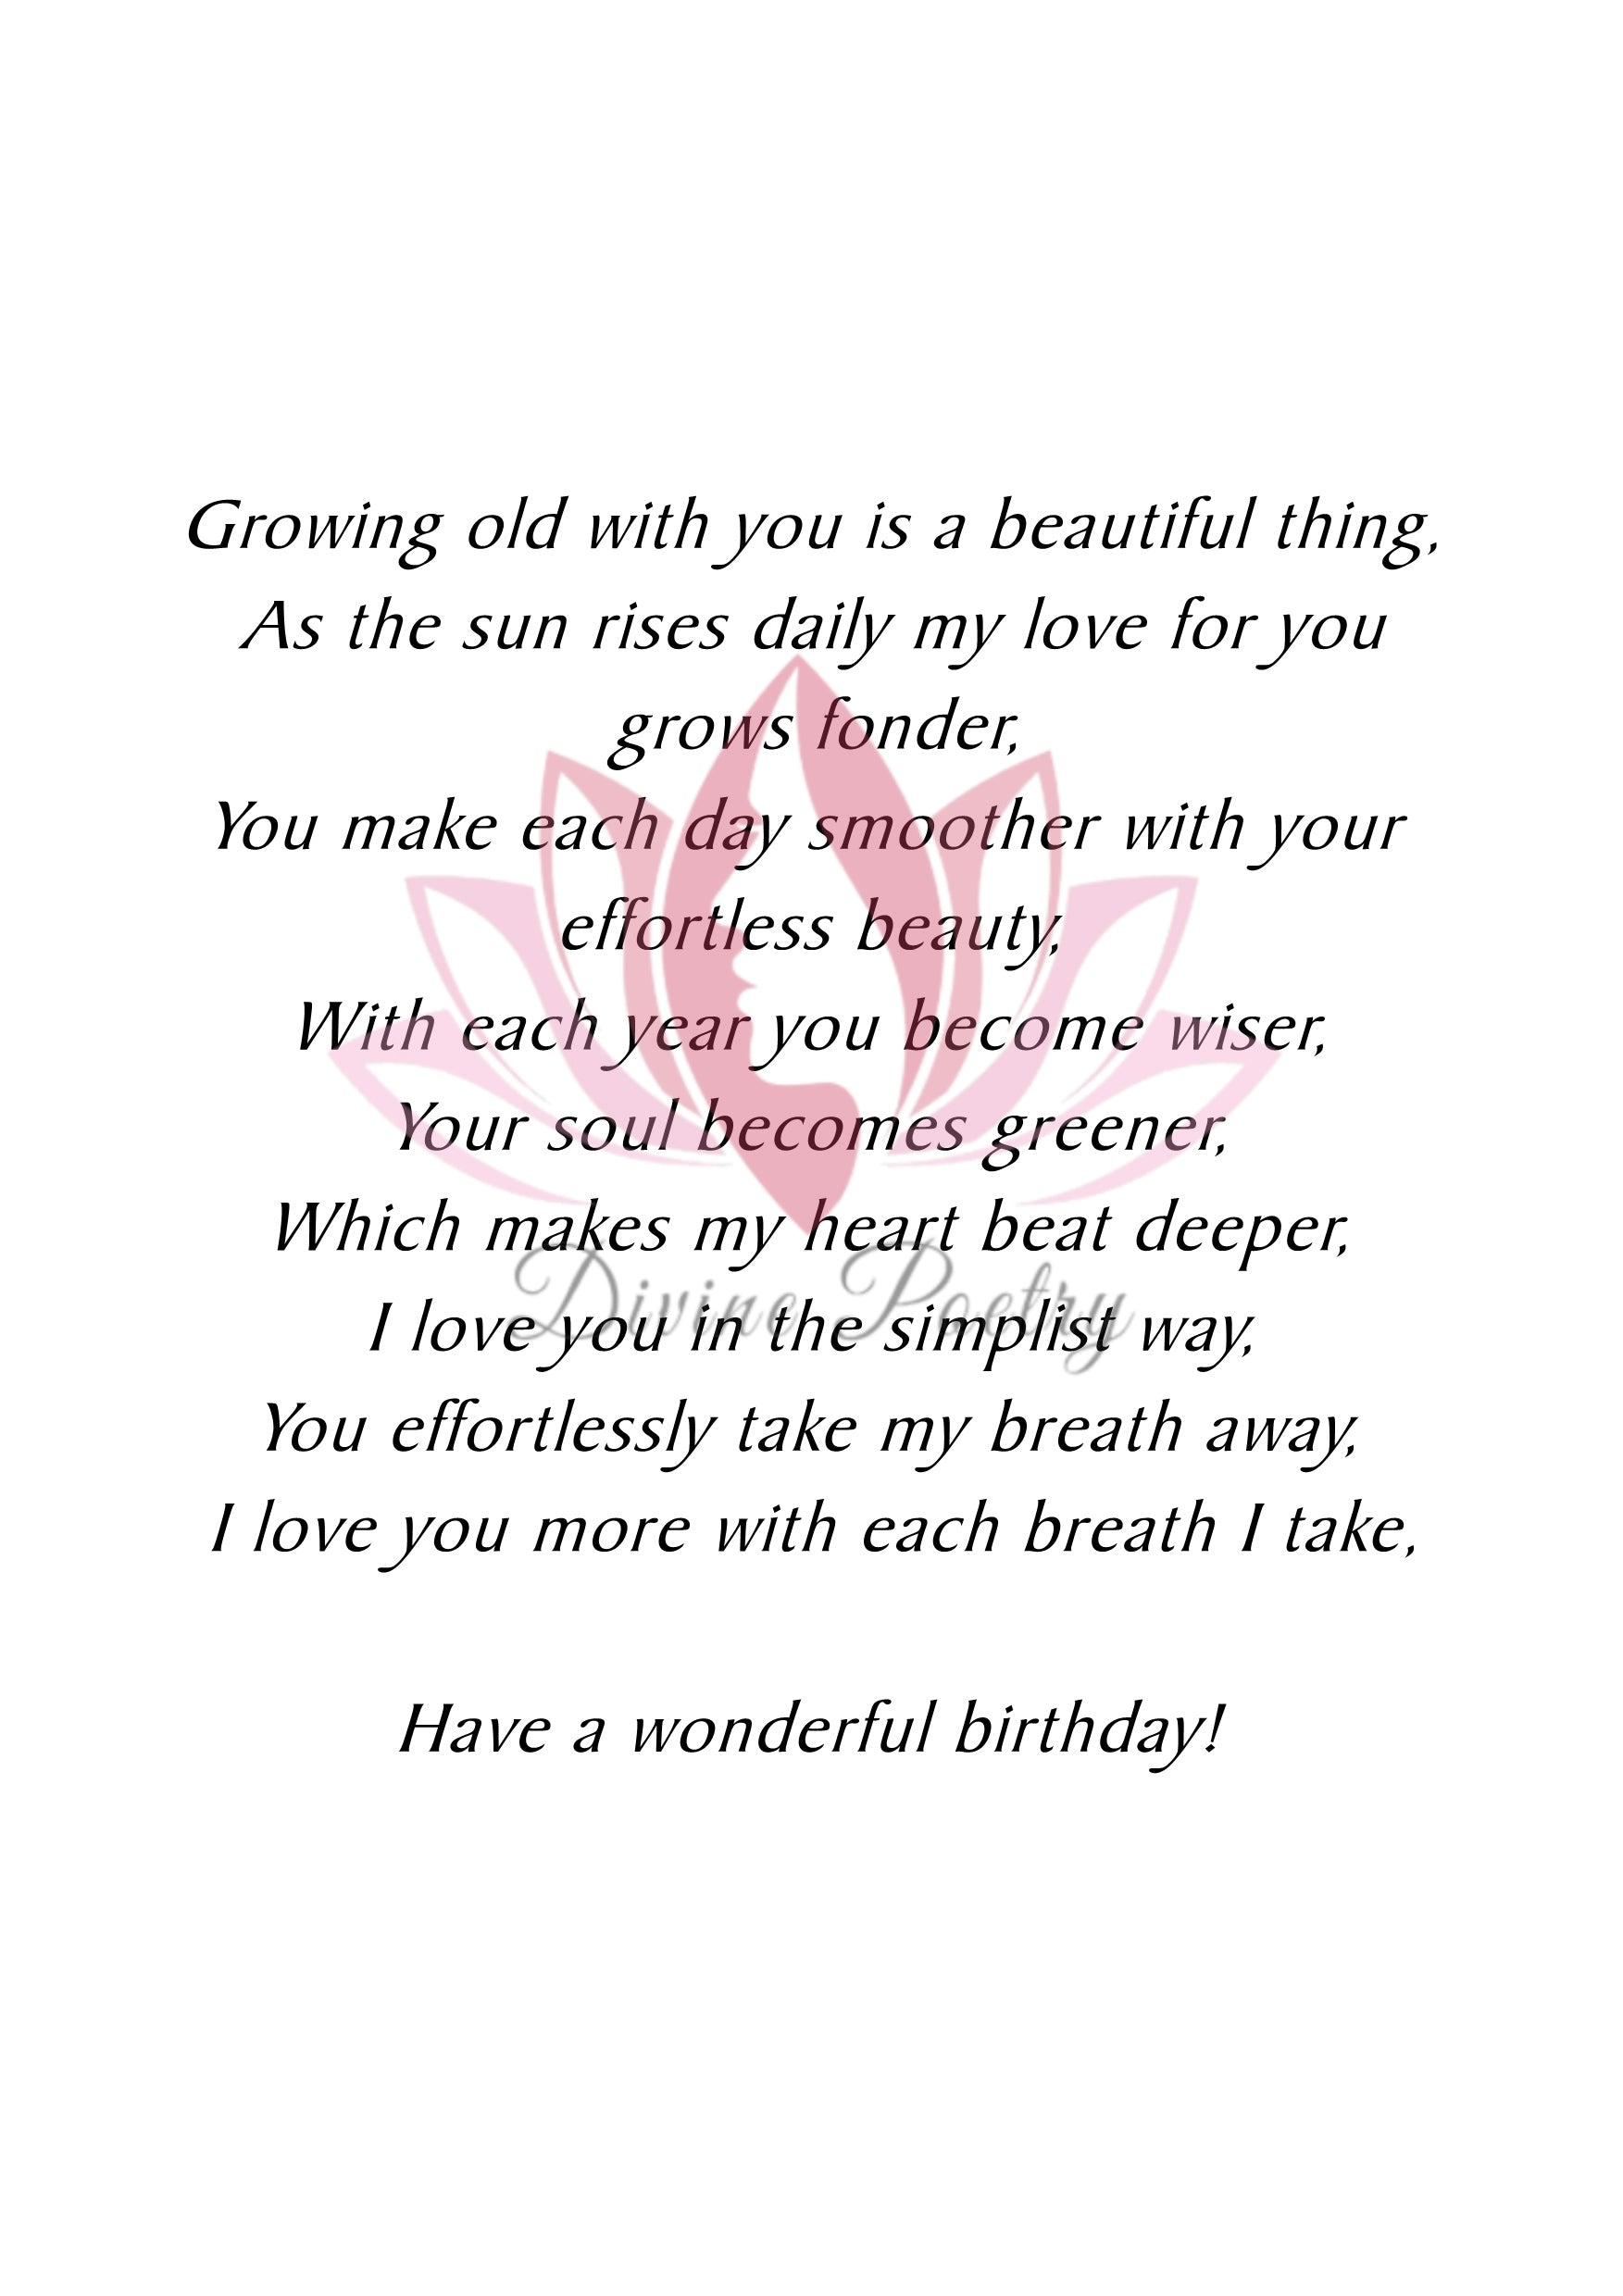 Happy Birthday To The One I Love Most - Divine Poetry